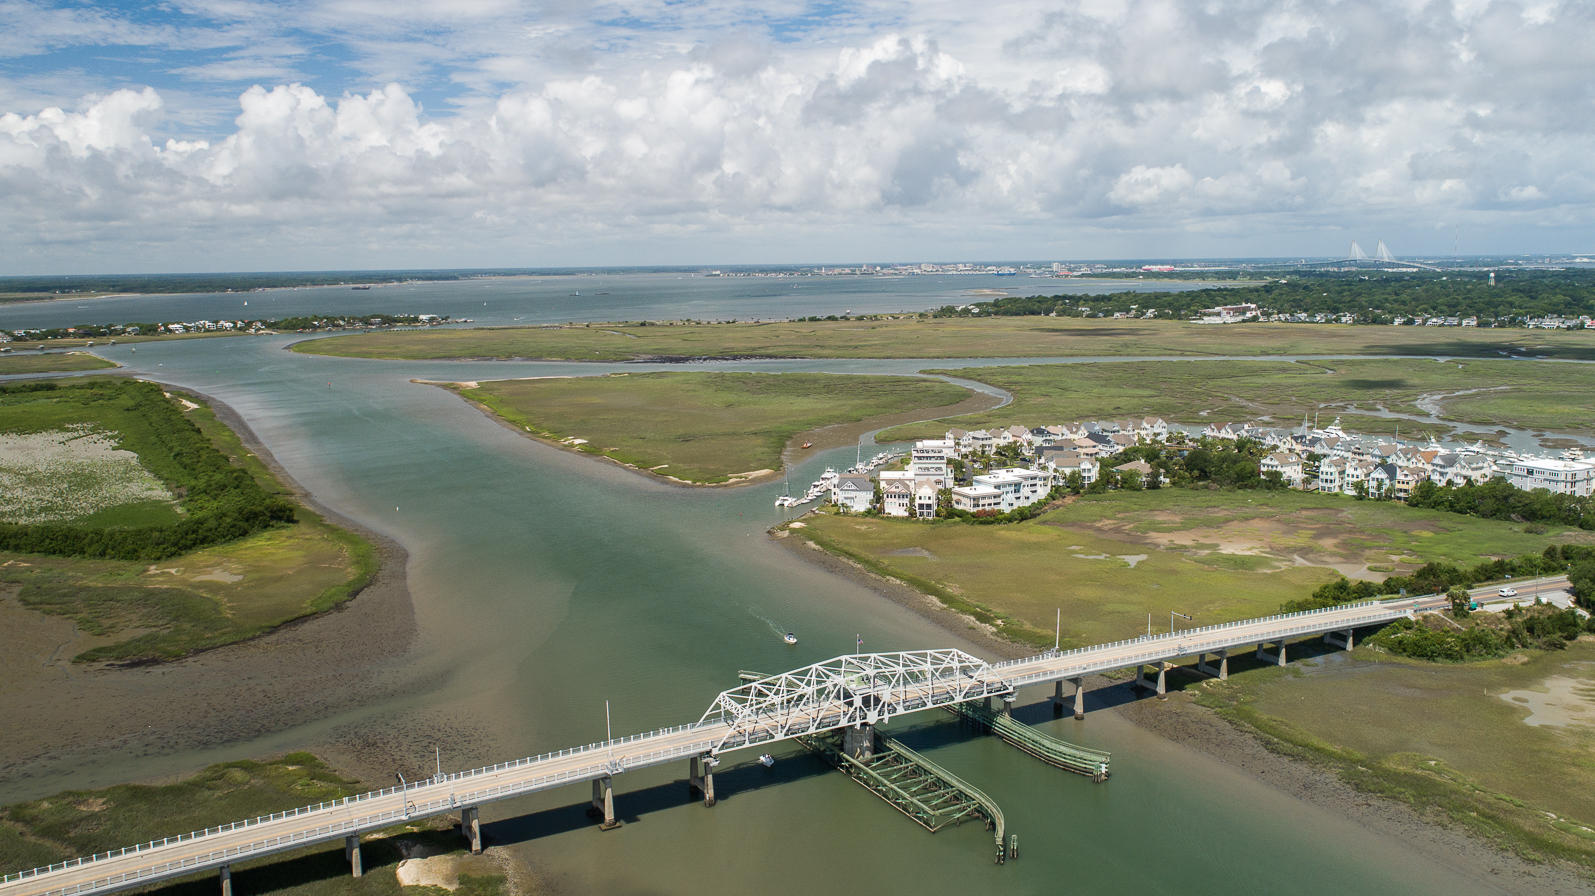 Tolers Cove Homes For Sale - B-4 & B-5 Tolers Cove Marina 70ft + Home, Mount Pleasant, SC - 54